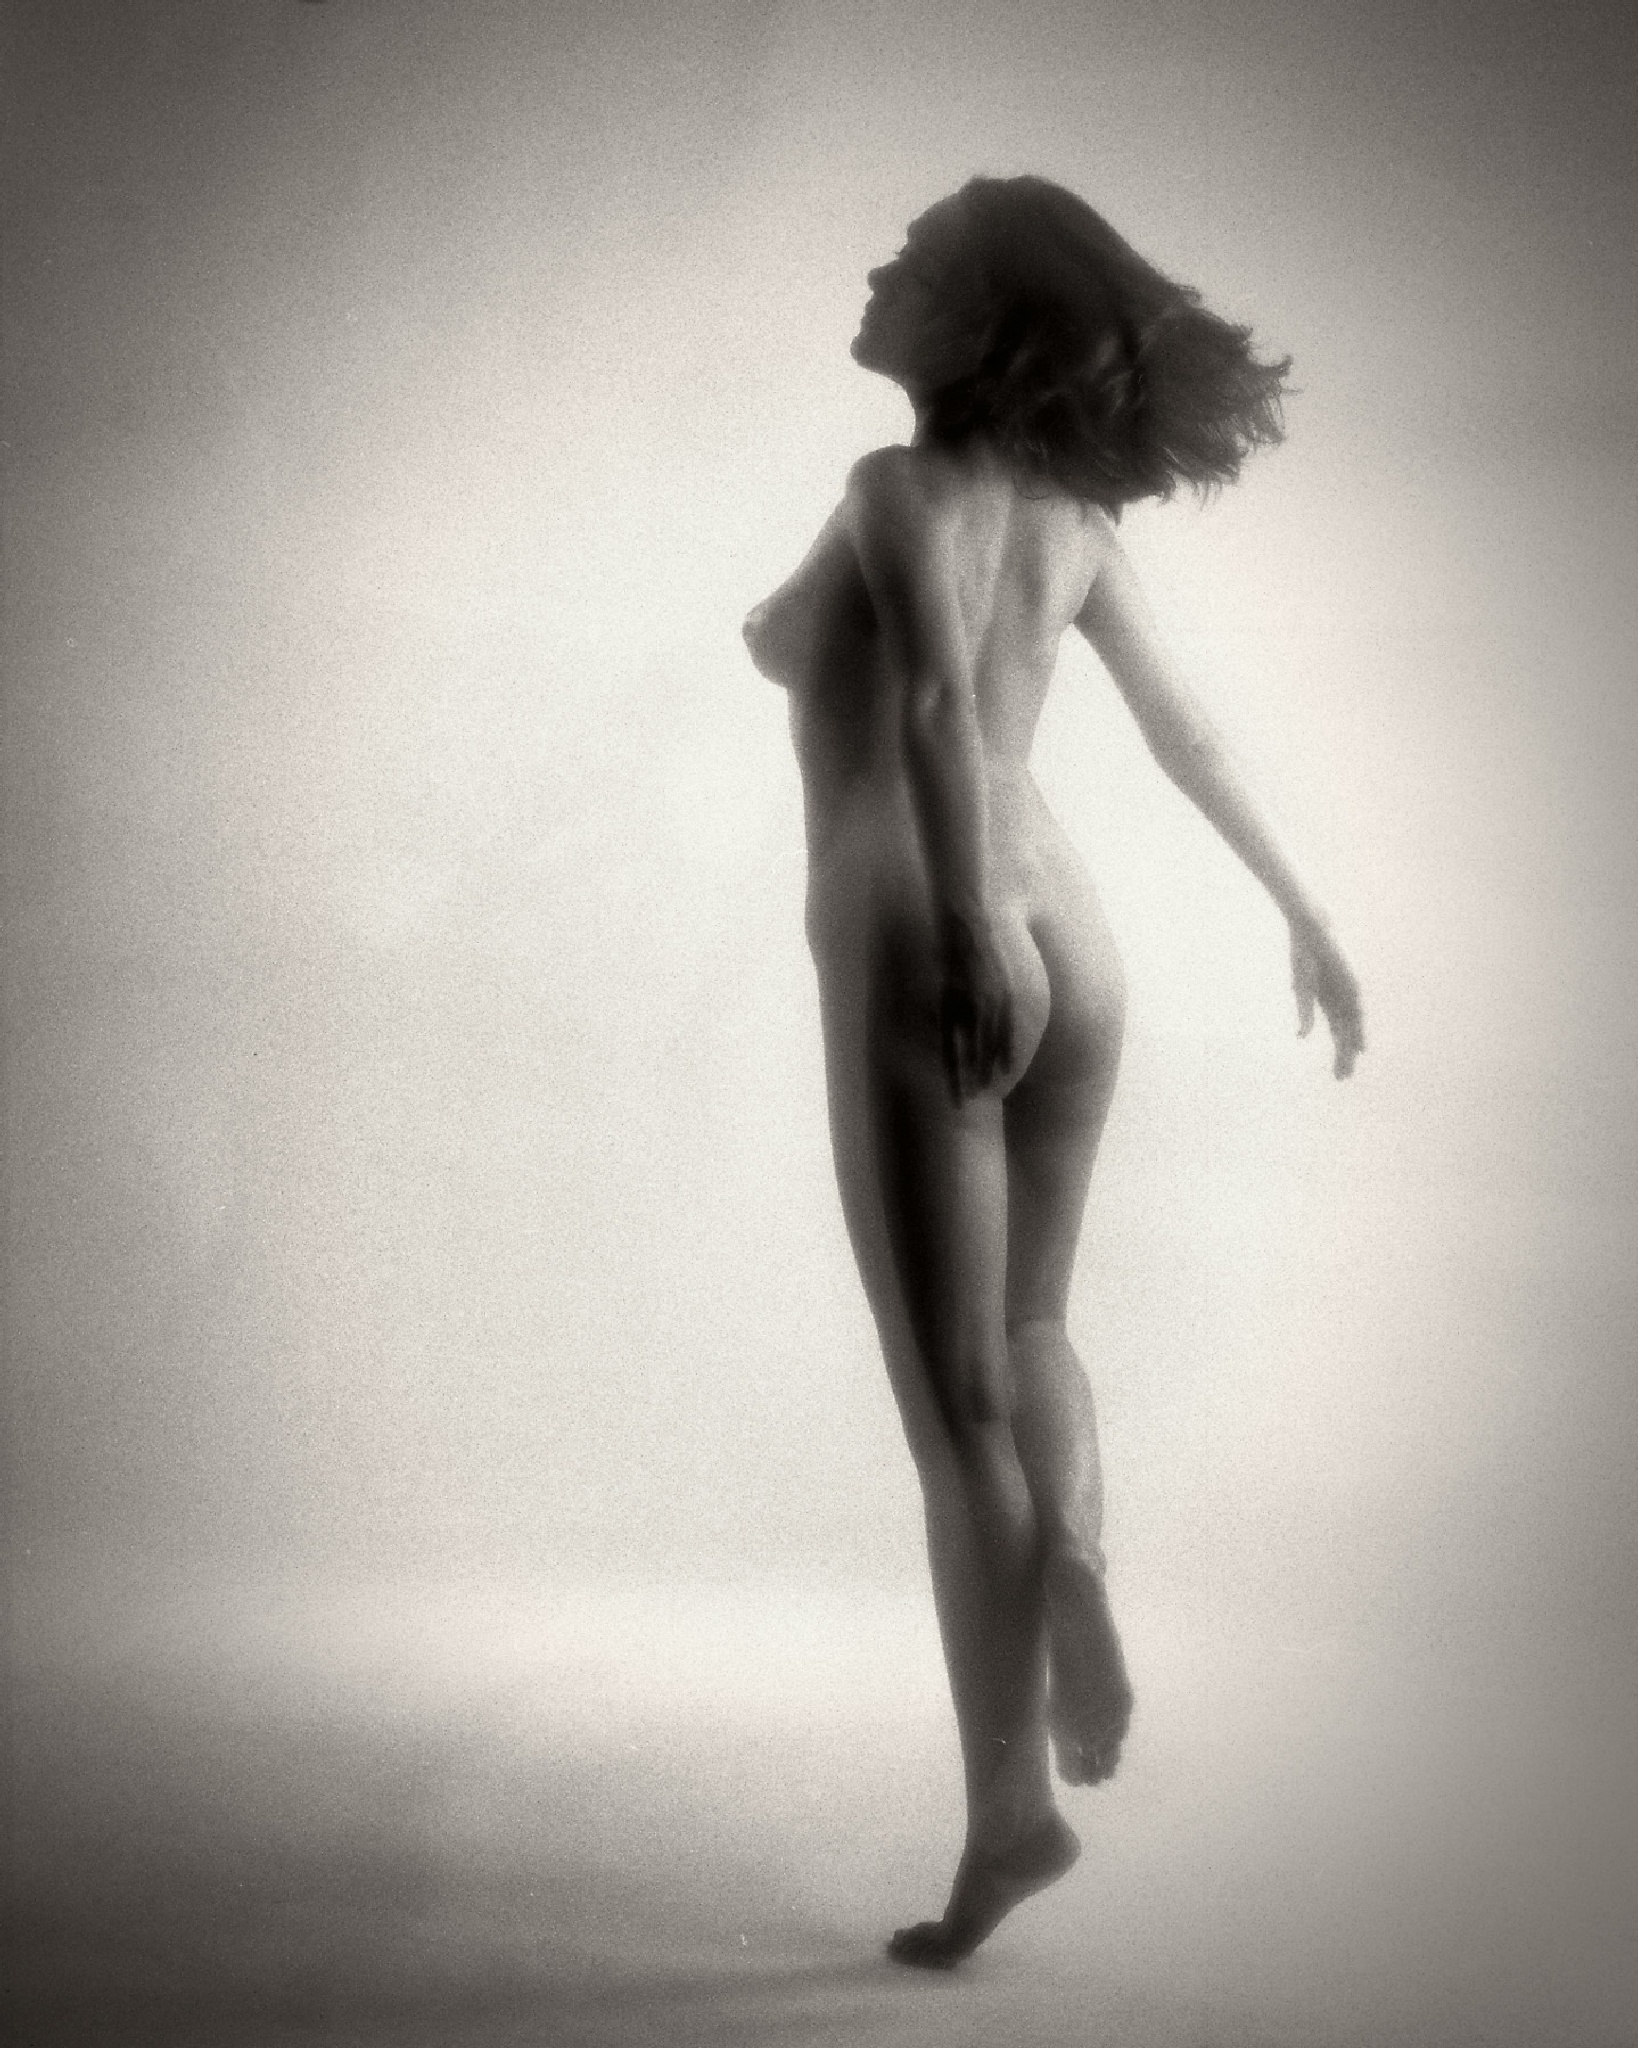 Nude in motion by Pixforce